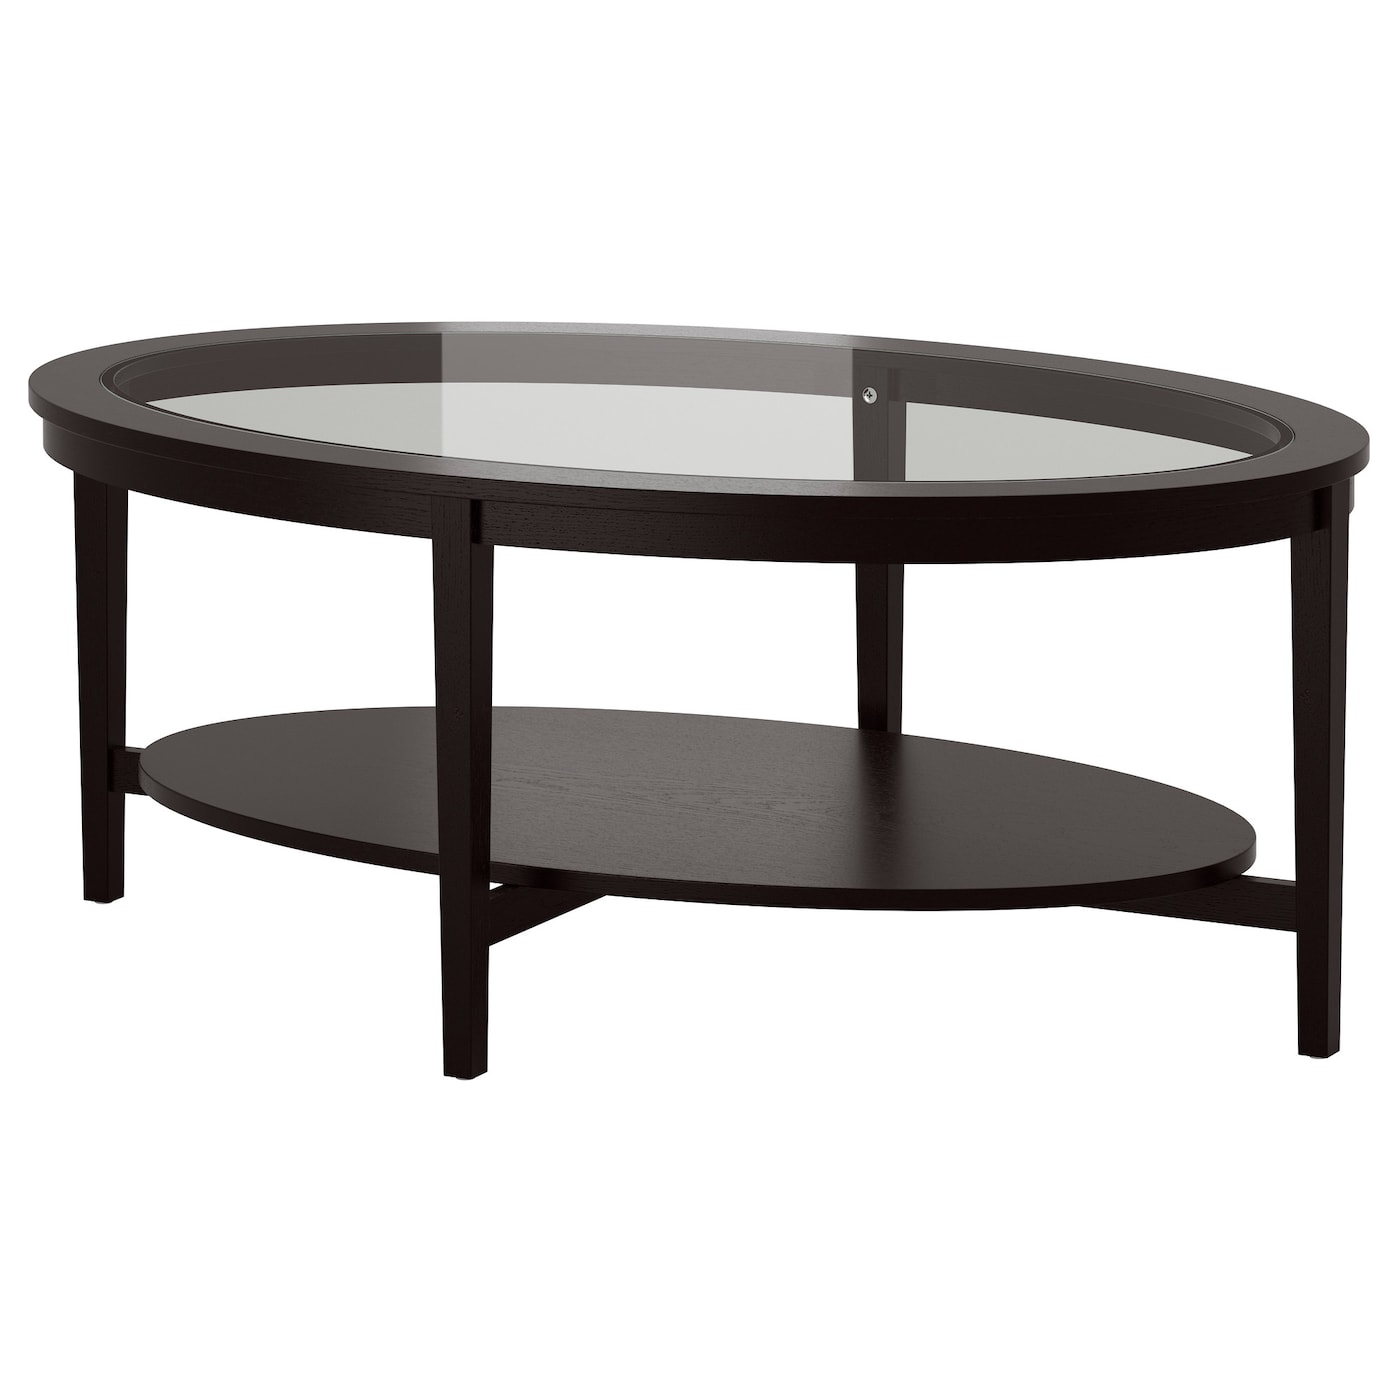 Malmsta coffee table black brown 130x80 cm ikea - Tables basses design italien ...